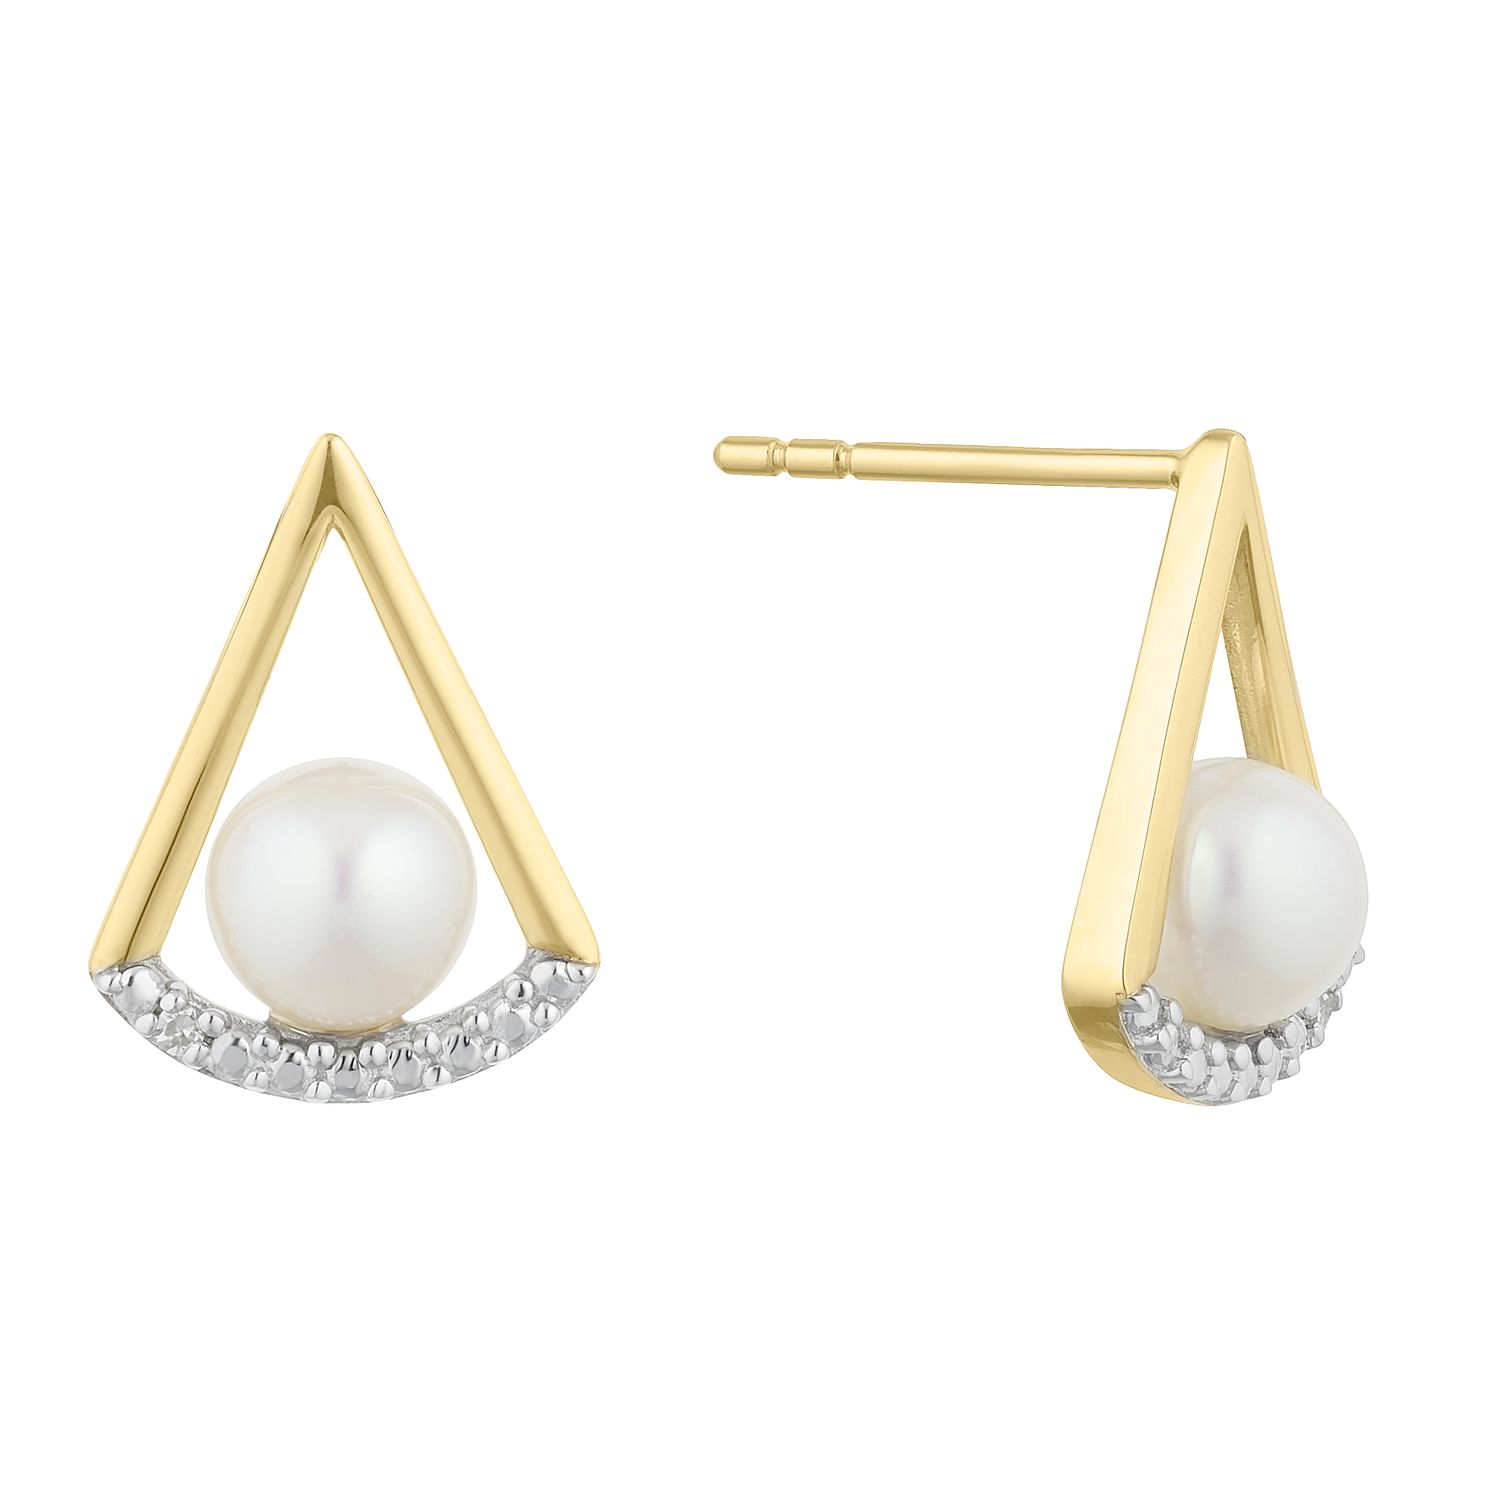 9ct Gold Cultured Freshwater Pearl & Diamond Stud Earrings - Product number 2961067